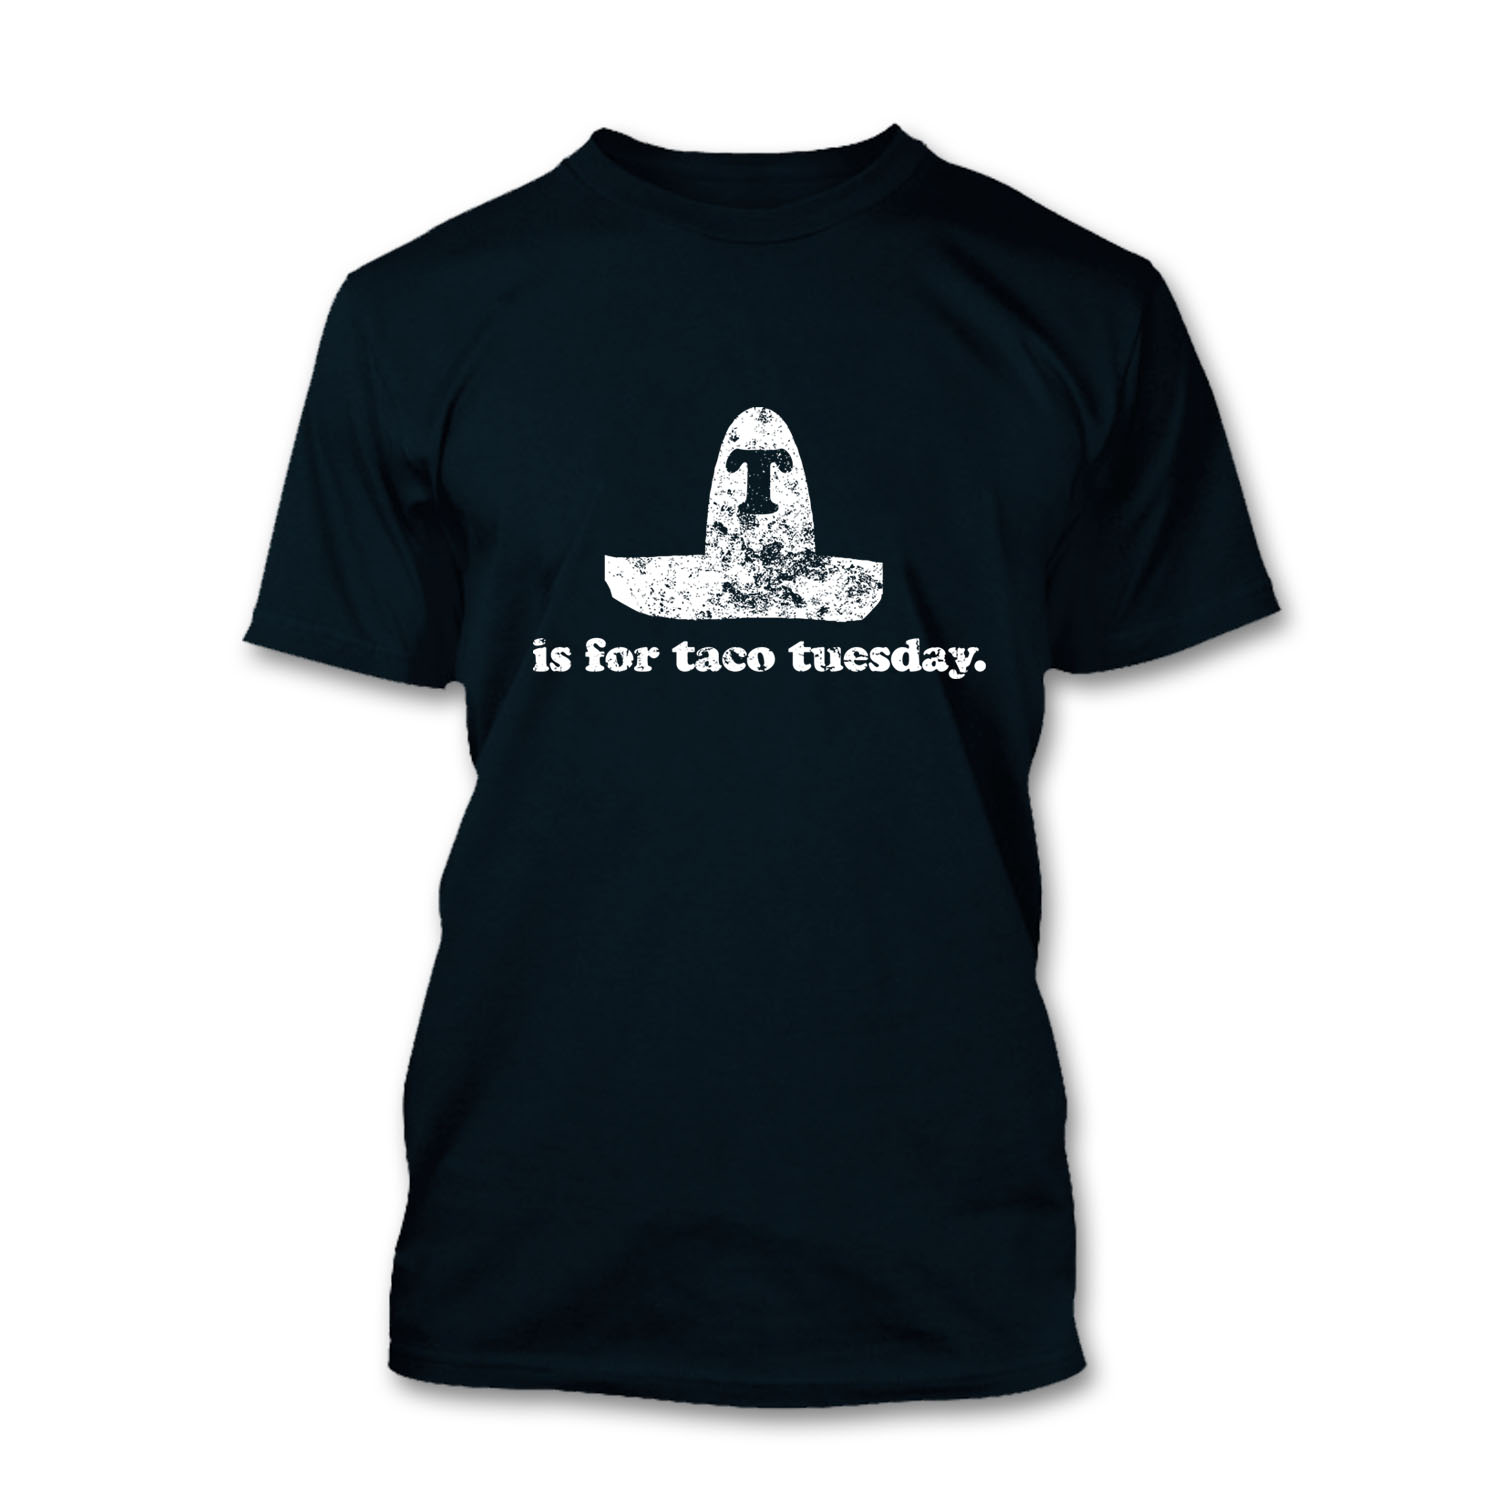 FROSTY-TEES-MENS-T-IS-FOR-TACO-TUESDAY-MEXICAN-SOMBRARO-HAT-HEAVY-T-SHIRT-TEE